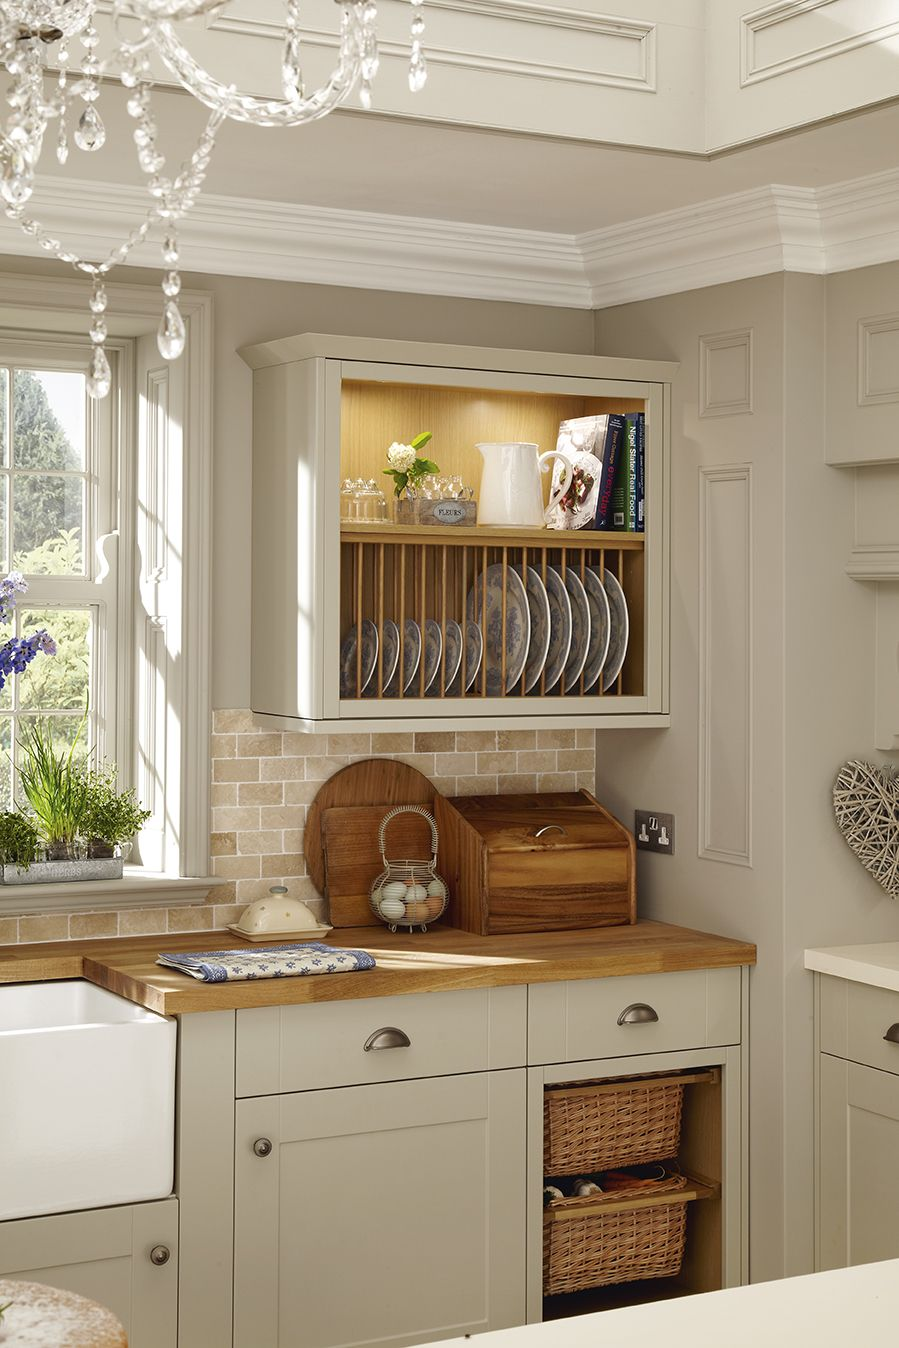 Howdens With Images Kitchen Design Kitchen Cabinet Design Shaker Style Kitchens